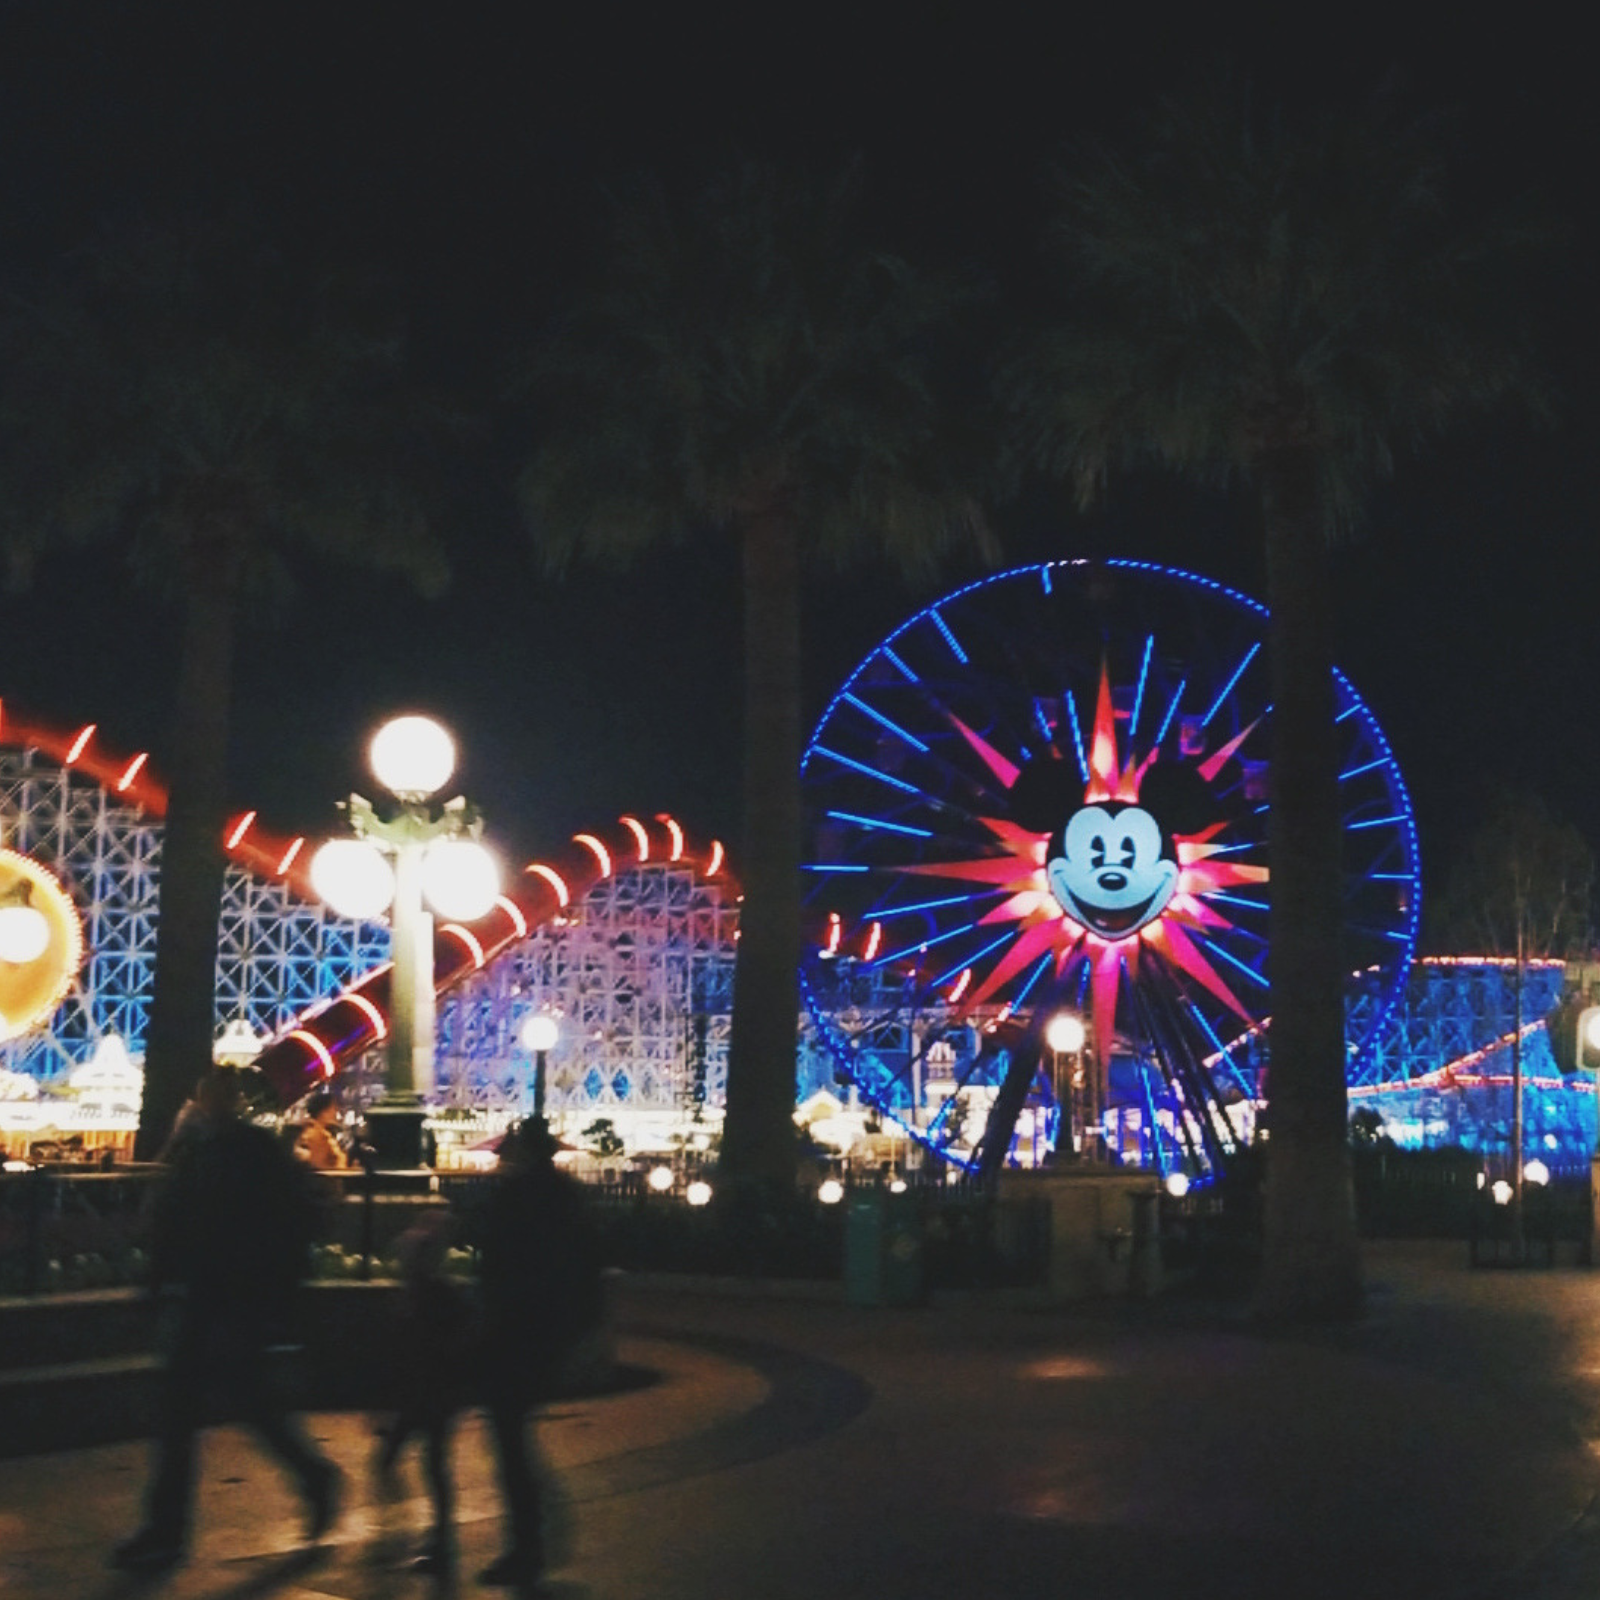 California Adventure at night with the ferris wheel with Mickey Mouse on it, lit up